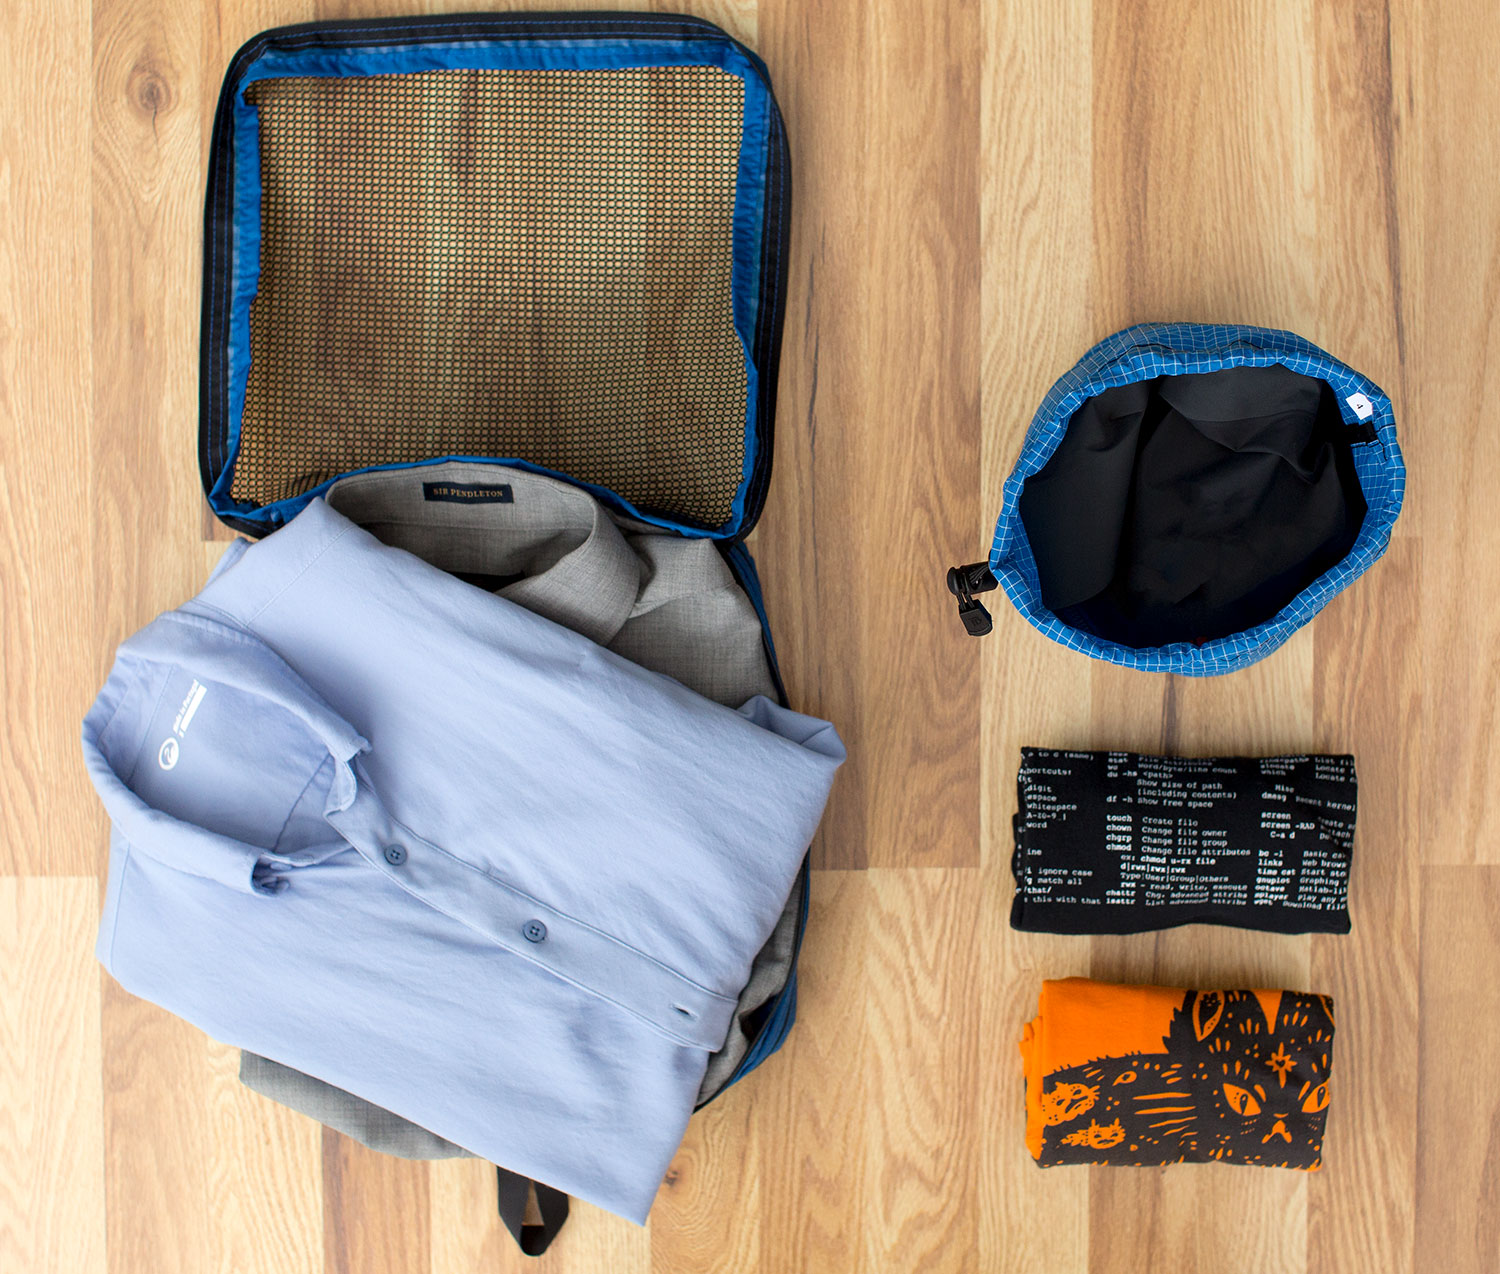 Use Packing Cubes for folded or bundled clothes and Stuff Sacks for rolled or compressible clothes